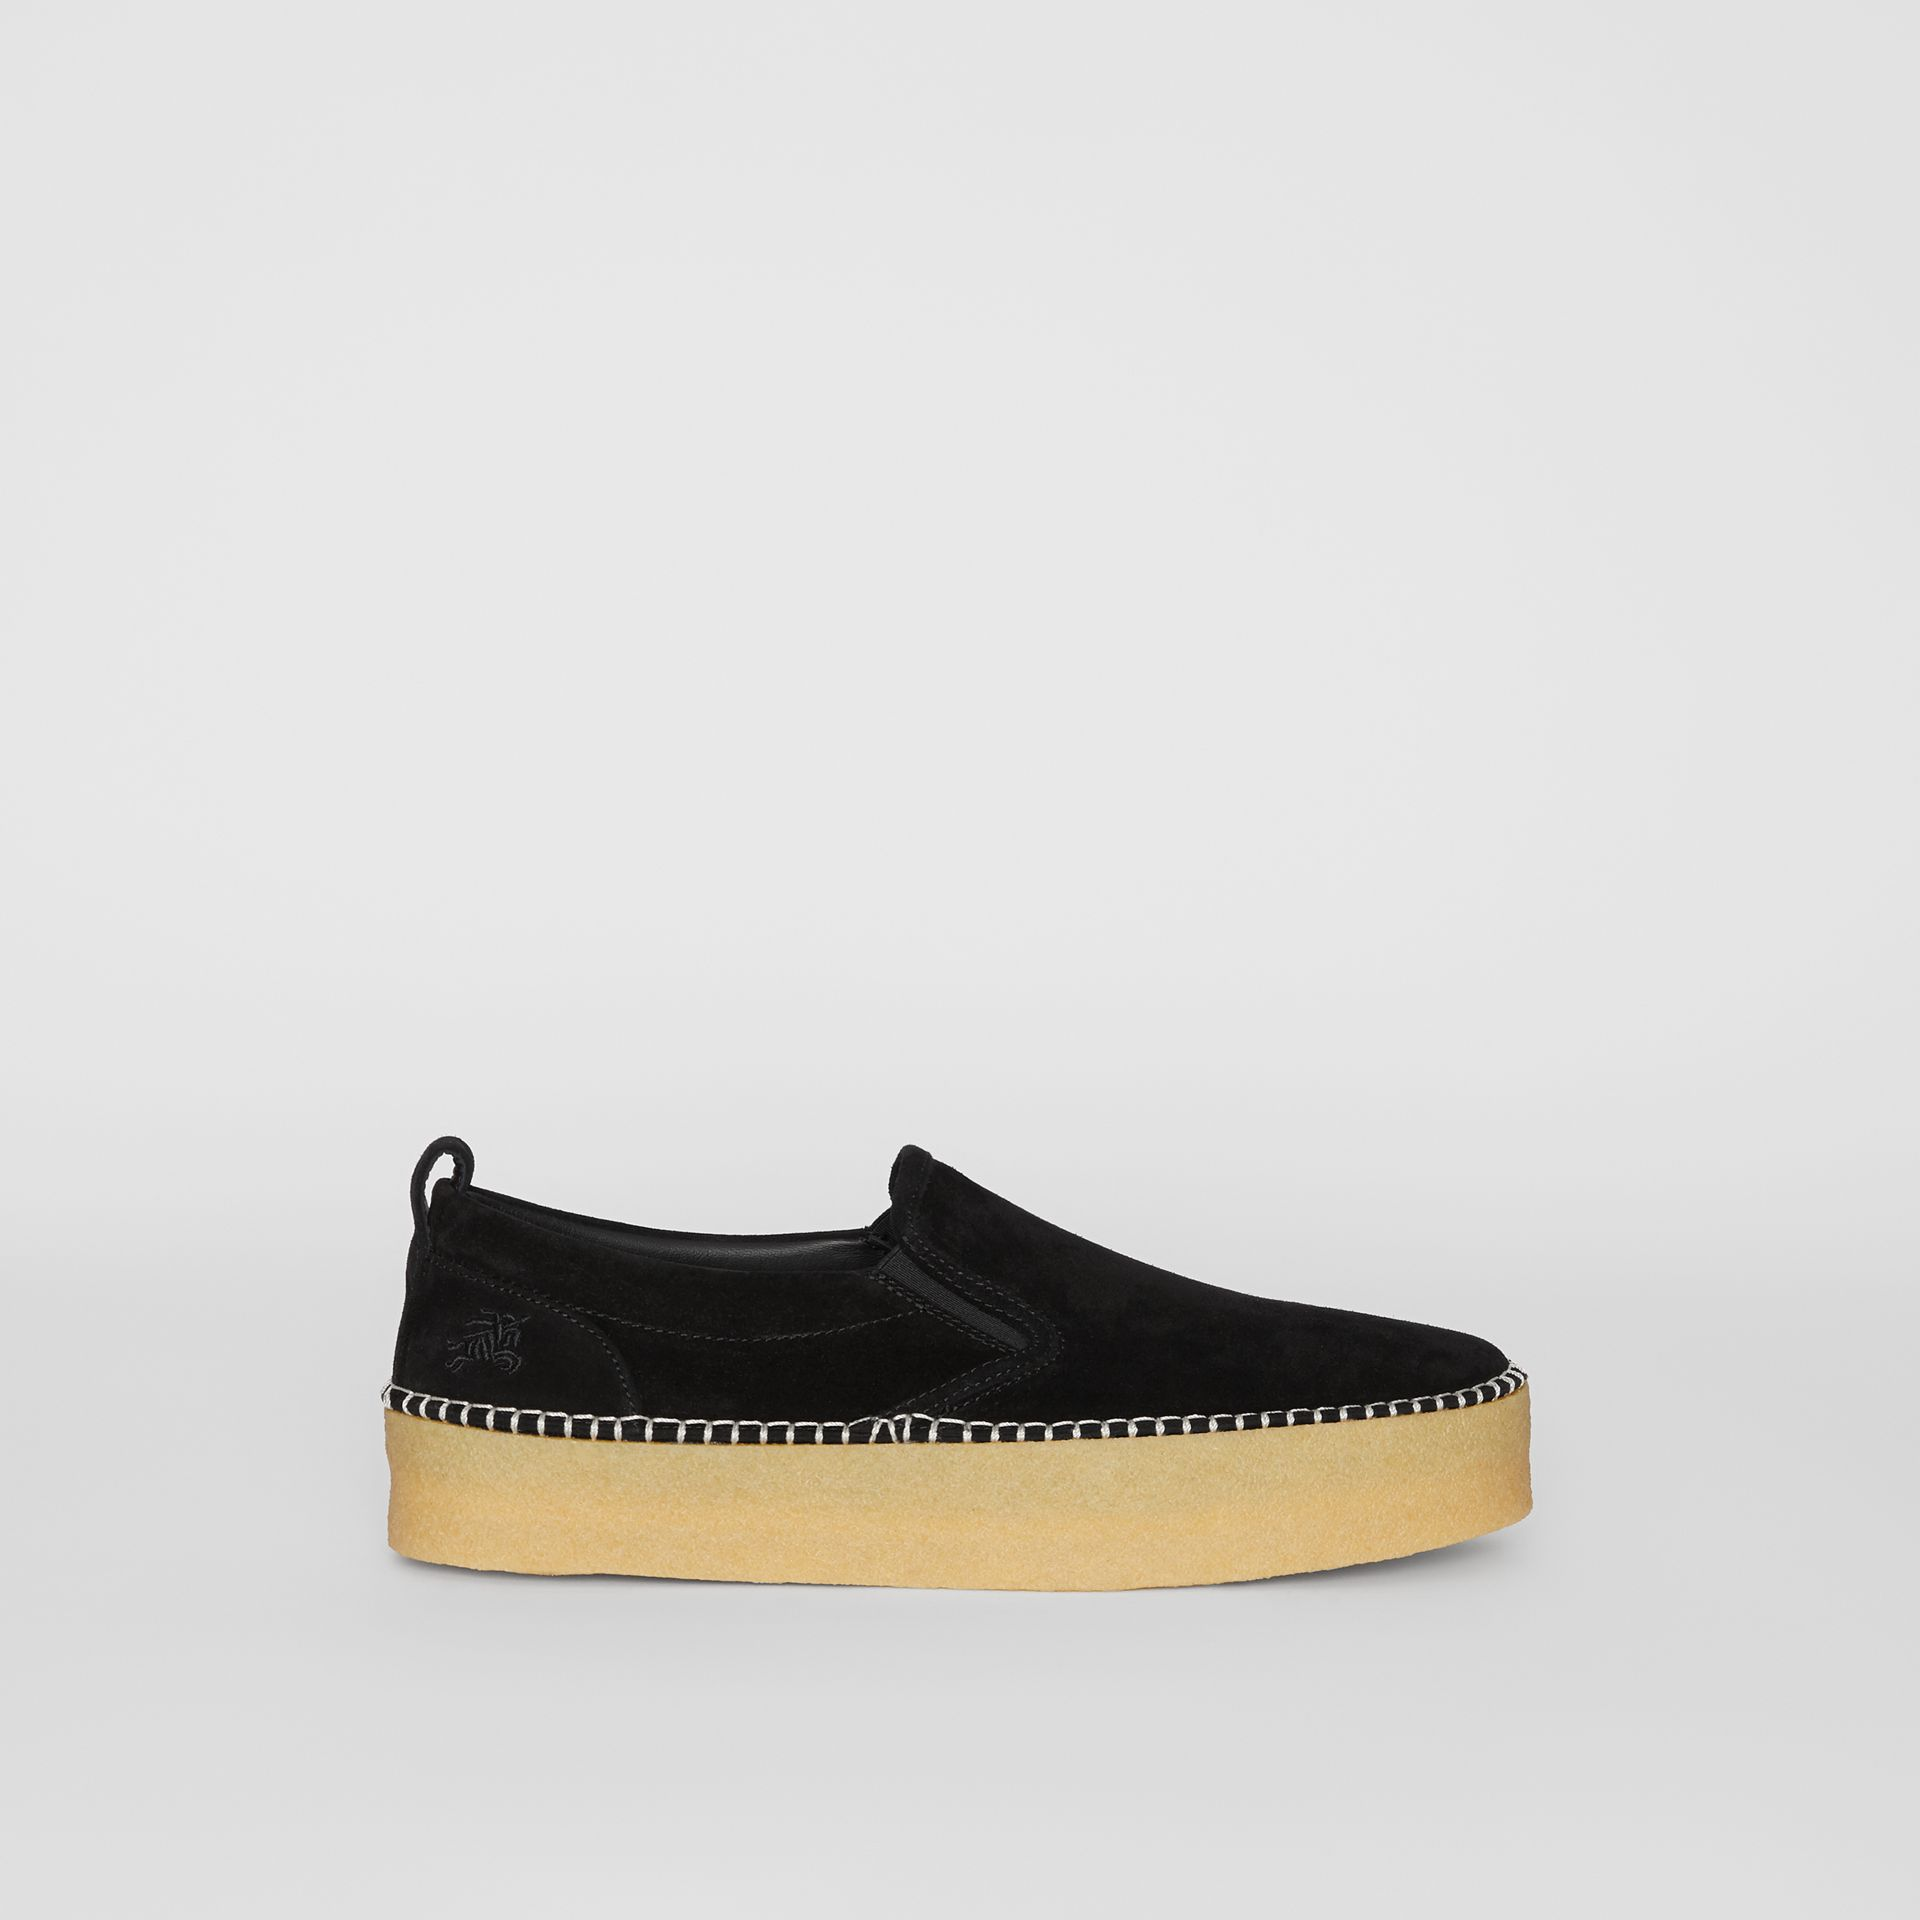 Suede Slip-on Sneakers in Black - Men | Burberry United Kingdom - gallery image 5